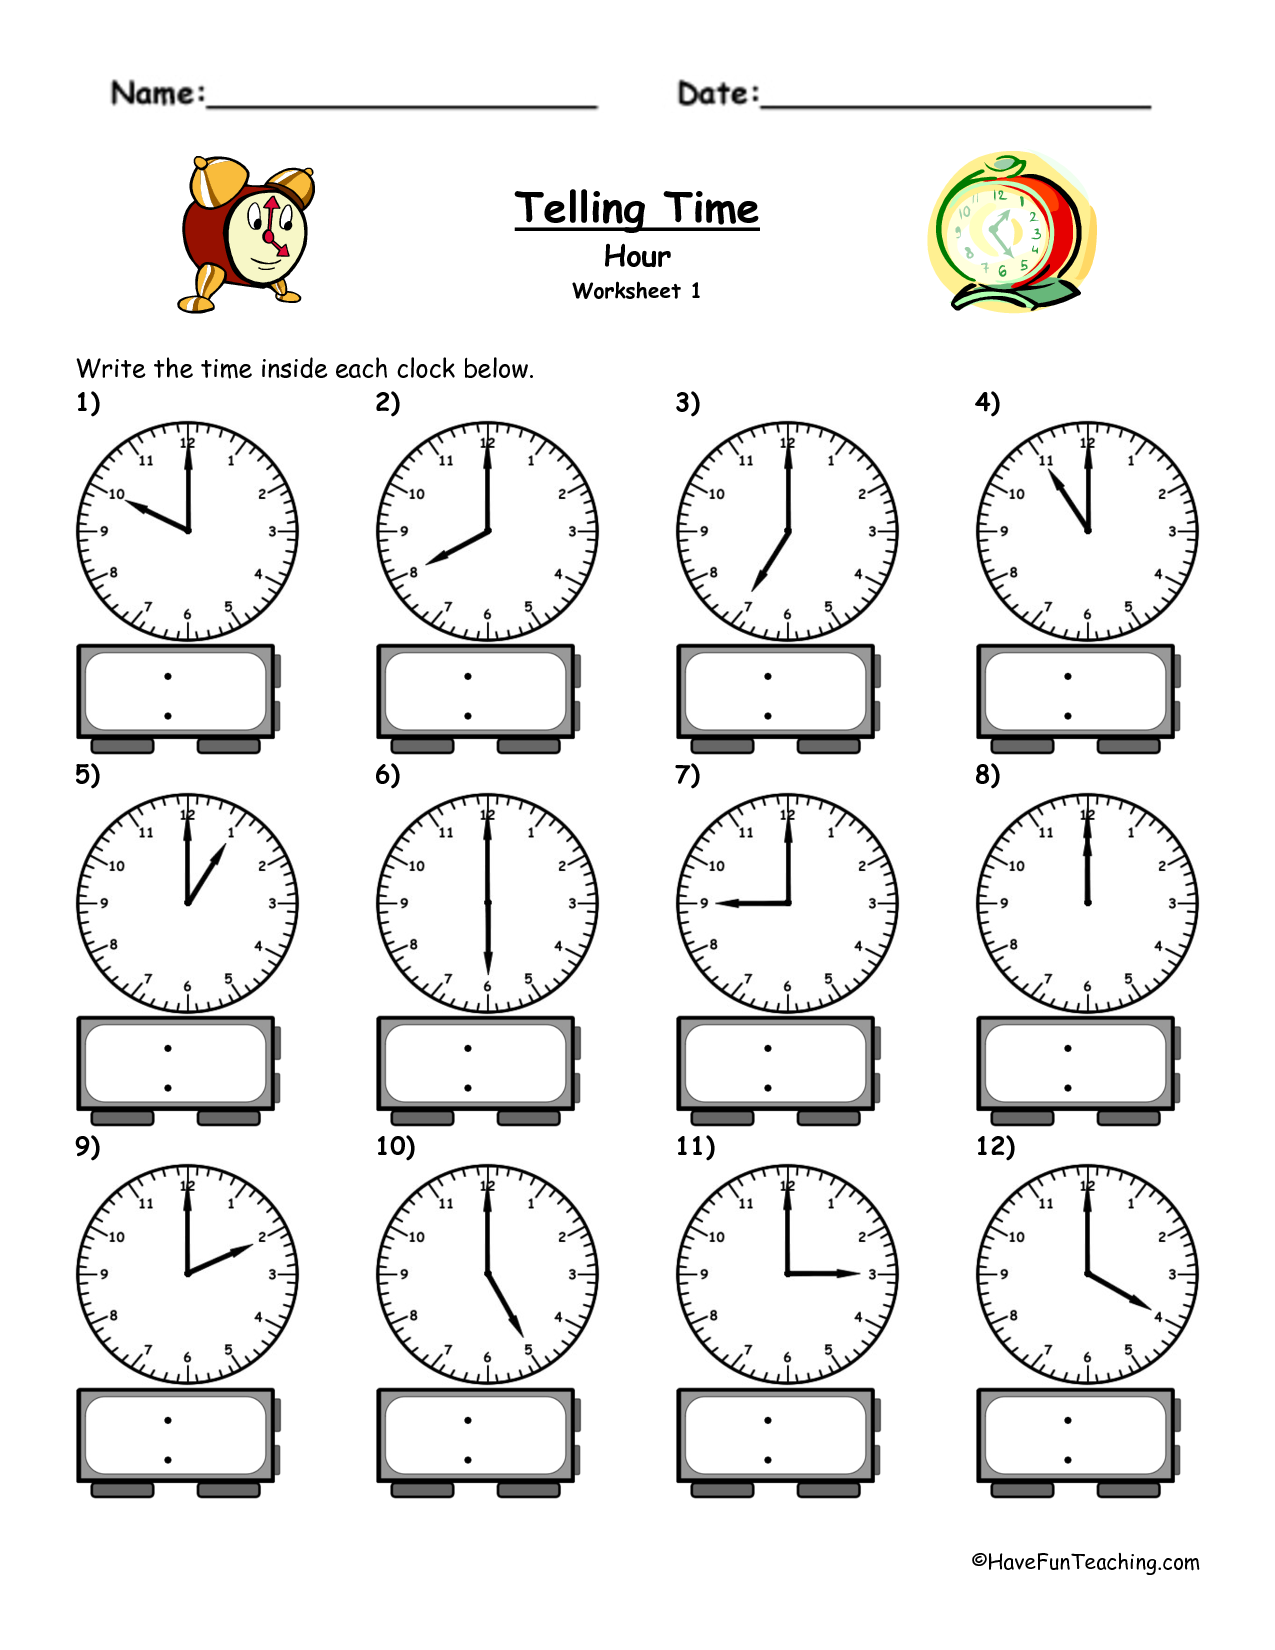 worksheet Time To The Hour Worksheets 1 000 bilder om horlosie pinterestmatte arbetsblad och undervisning